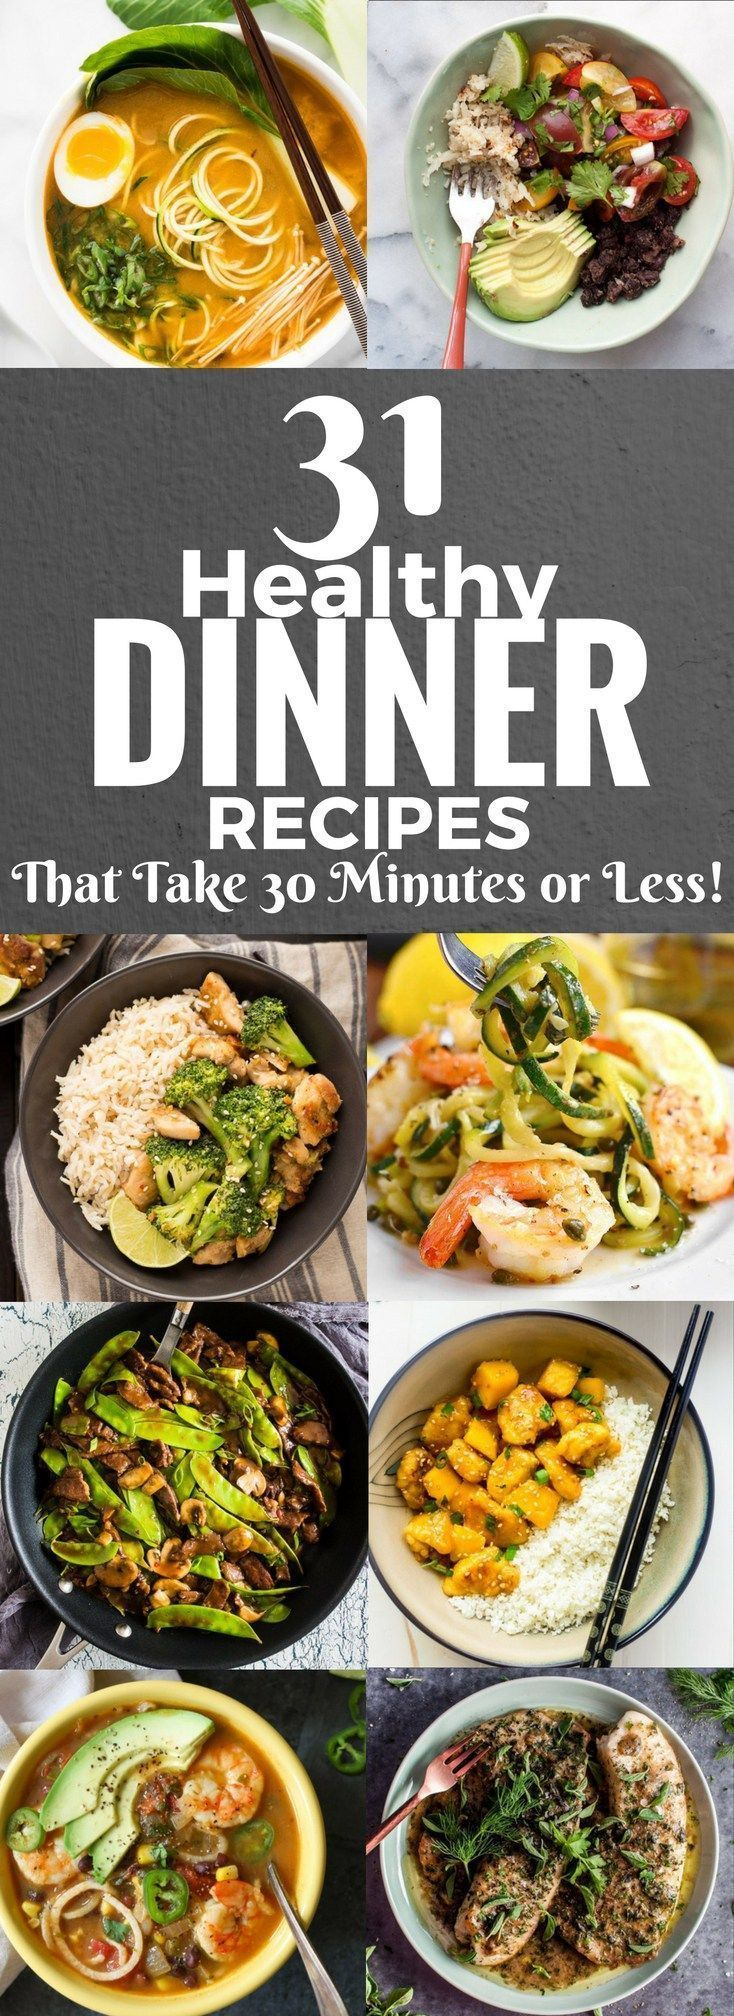 30 cheap and healthy dinner recipes food network canada other 30 cheap and healthy dinner recipes food network canada10 cheap healthy dinners food network food networkvalerie bertinellis 16 best dinner recipes forumfinder Image collections